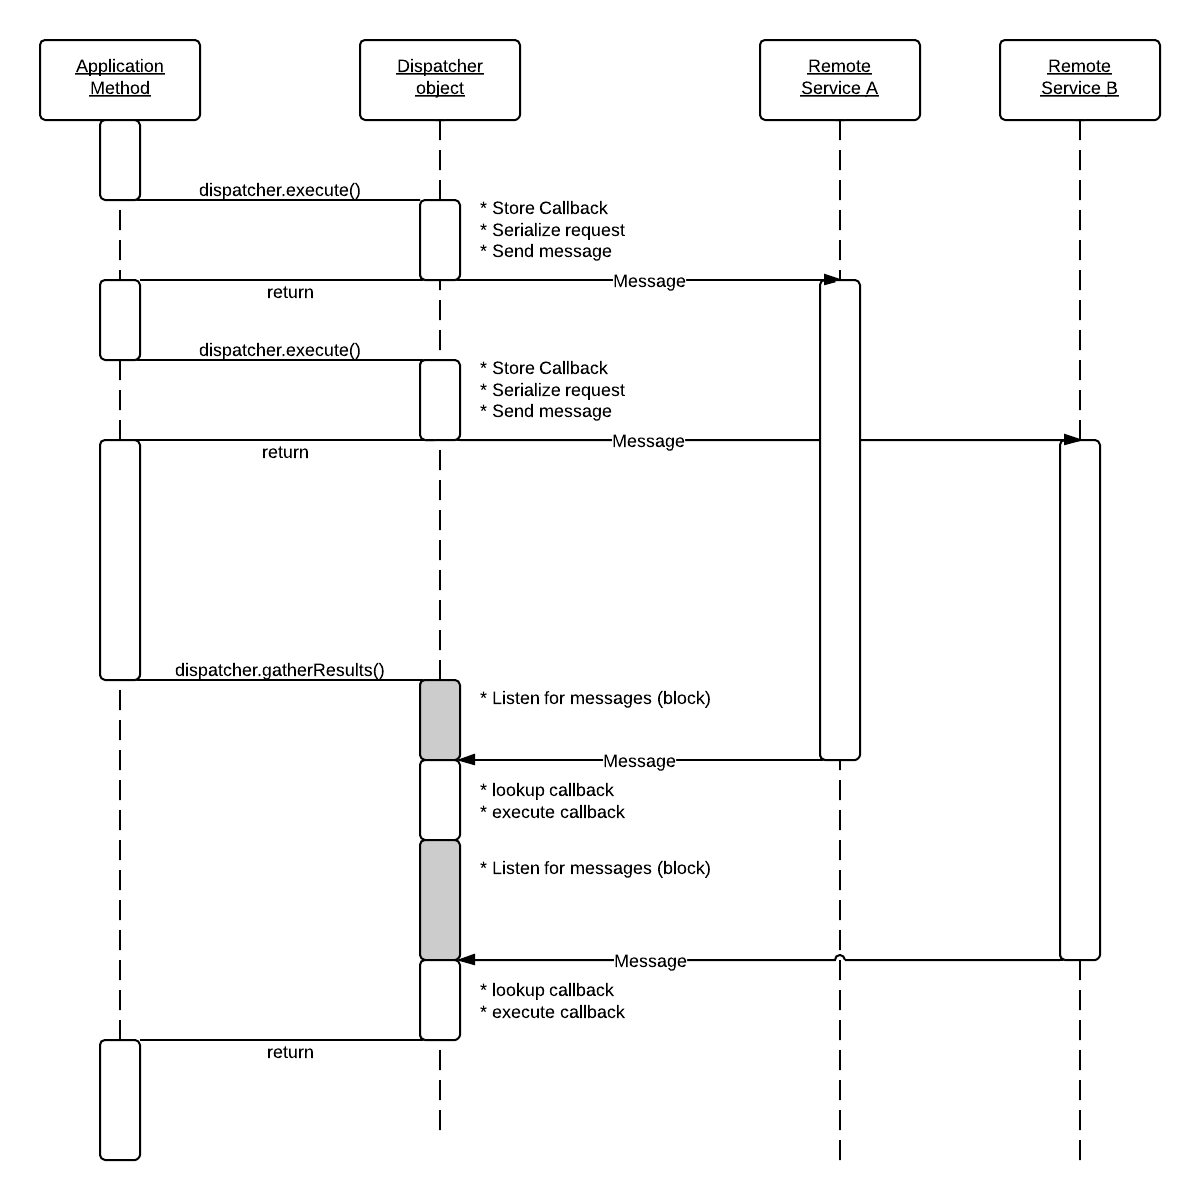 Image of control flow